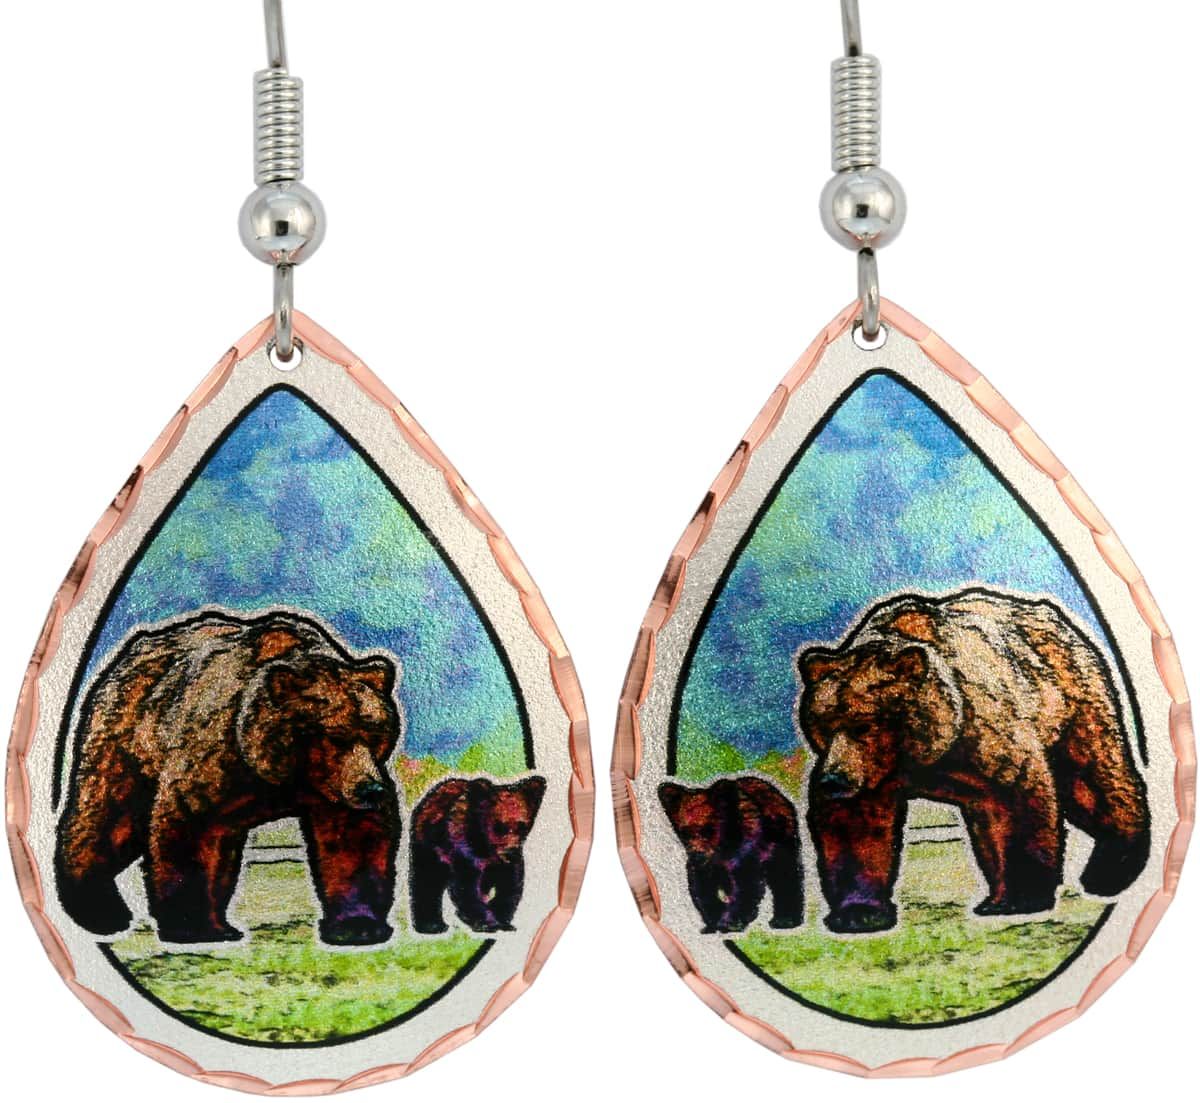 Wholesale wildlife jewelry earrings, bear earrings handmade from copper in vibrant colors to mak you smile